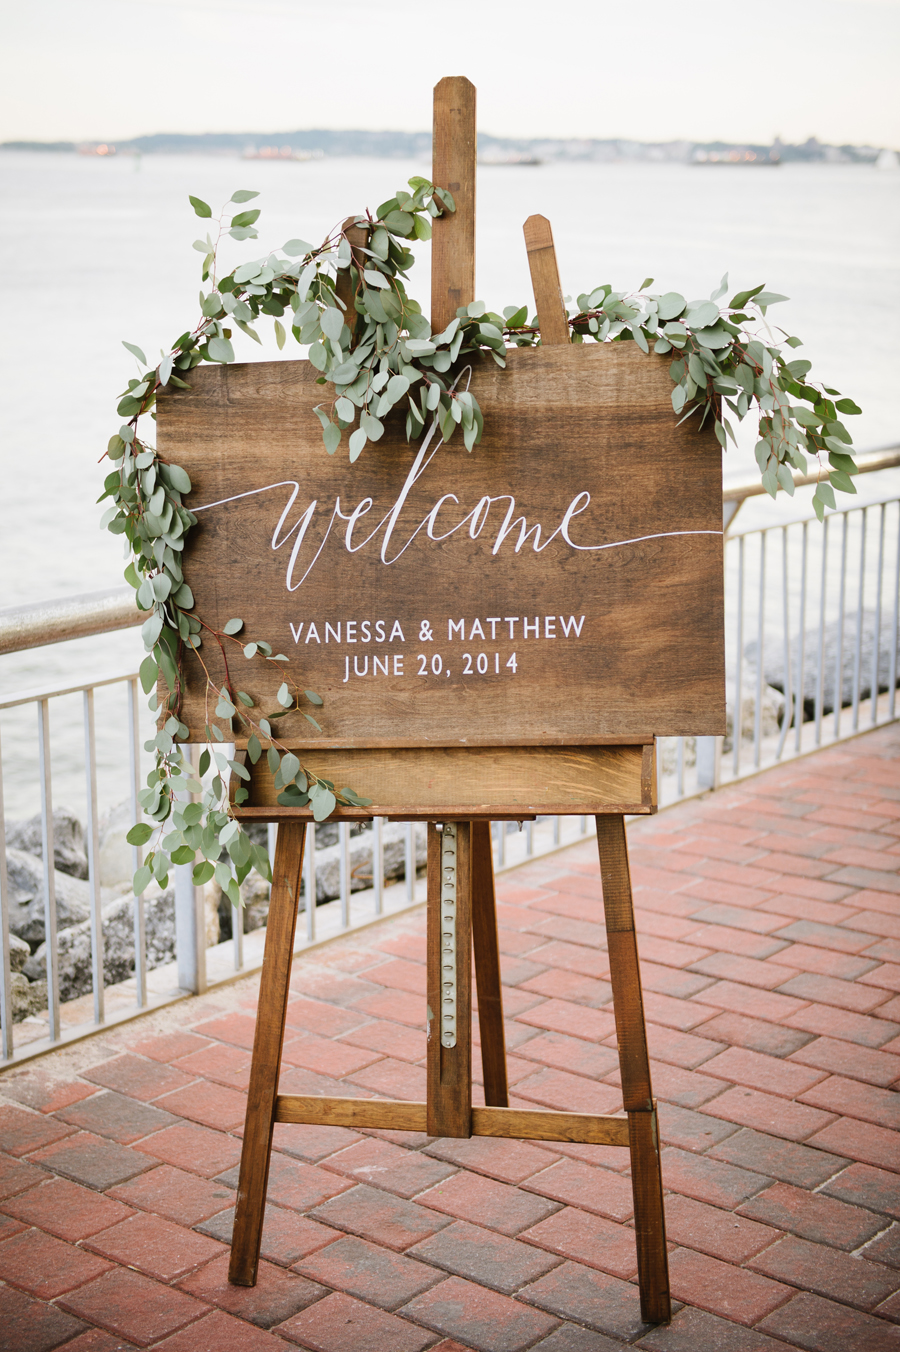 liberty-warehouse-wedding-calligraphy-wood-sign-eucalyptus